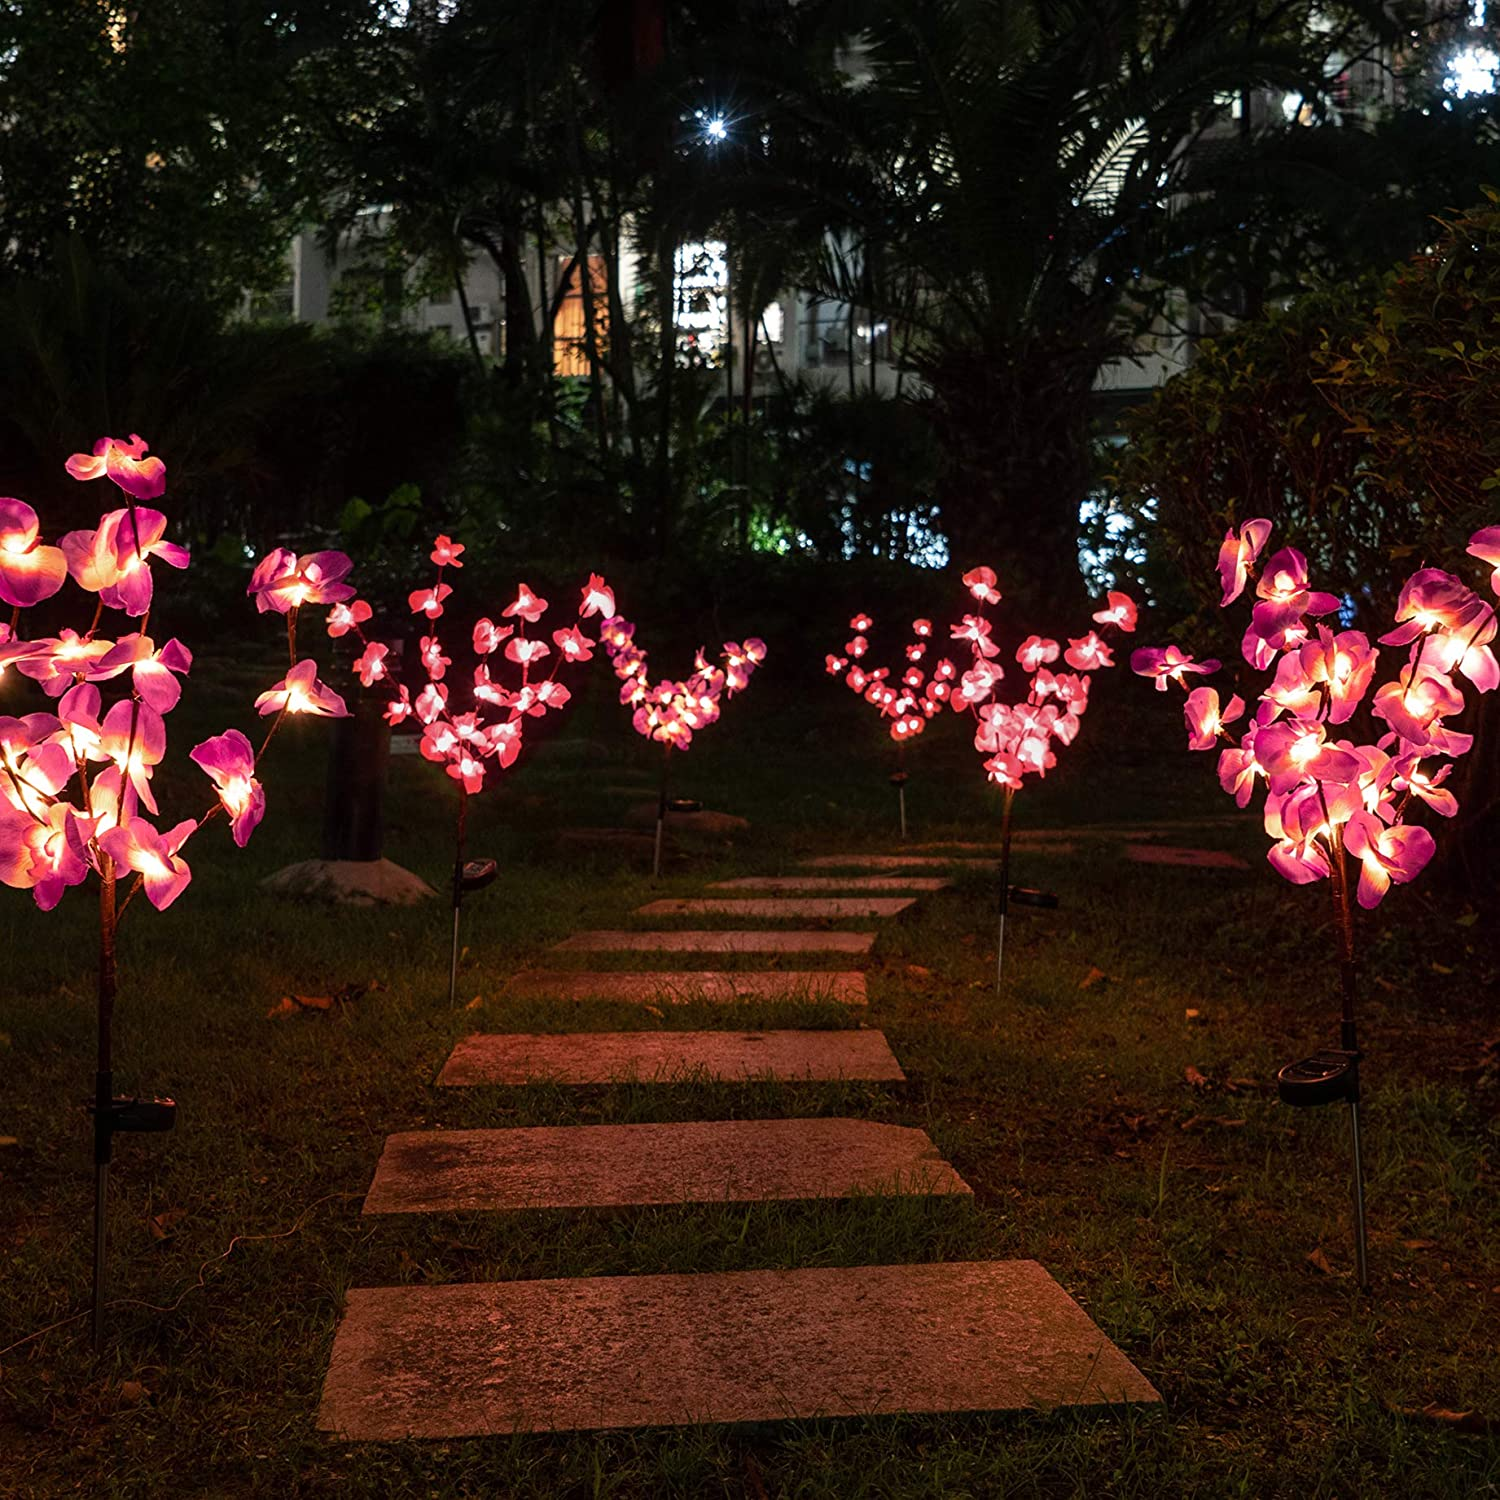 Fuchsia Solar Garden Lights Outdoor Stake Bright LED Solar Powered Landscape Lights for Pathway,Yard,Patio,Deck,Walkway Christmas Decoration Two Mode Solar Tree Lights